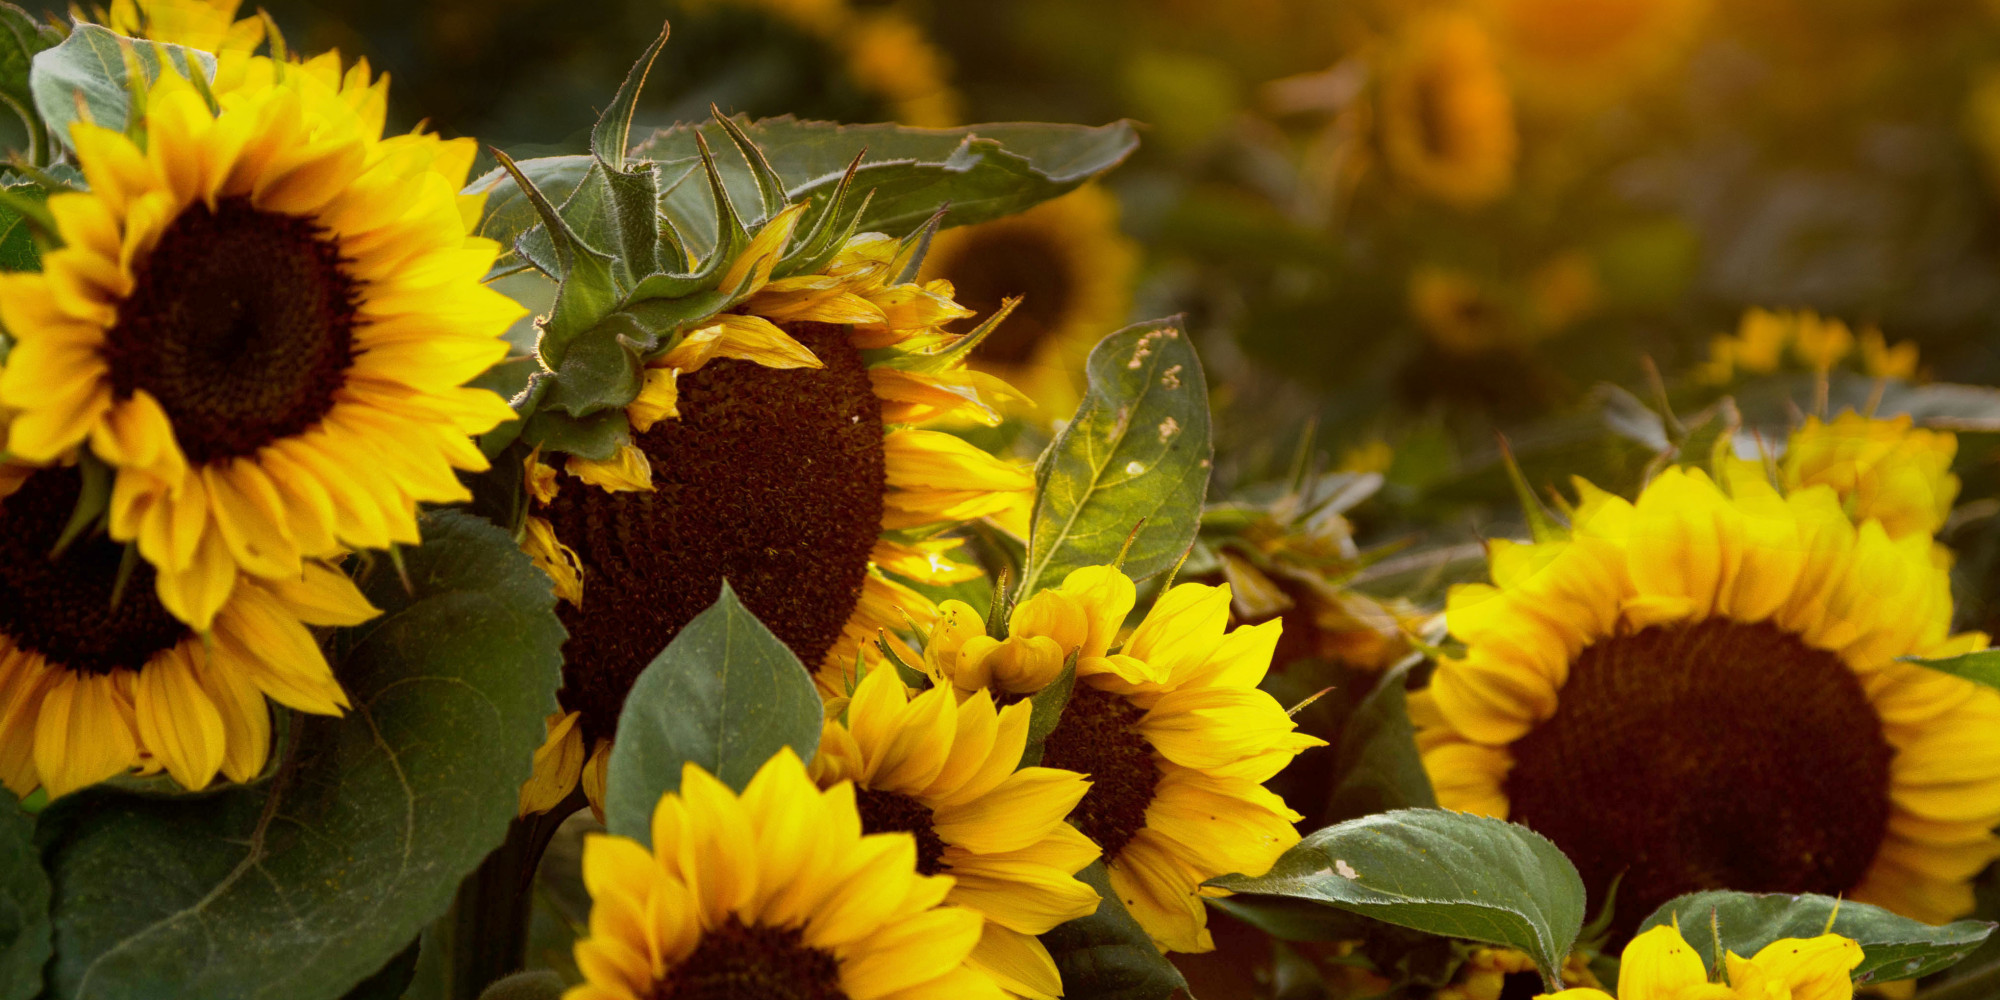 Sunflower Wallpaper With Quote Daily Meditation Sunflower Sutra Huffpost